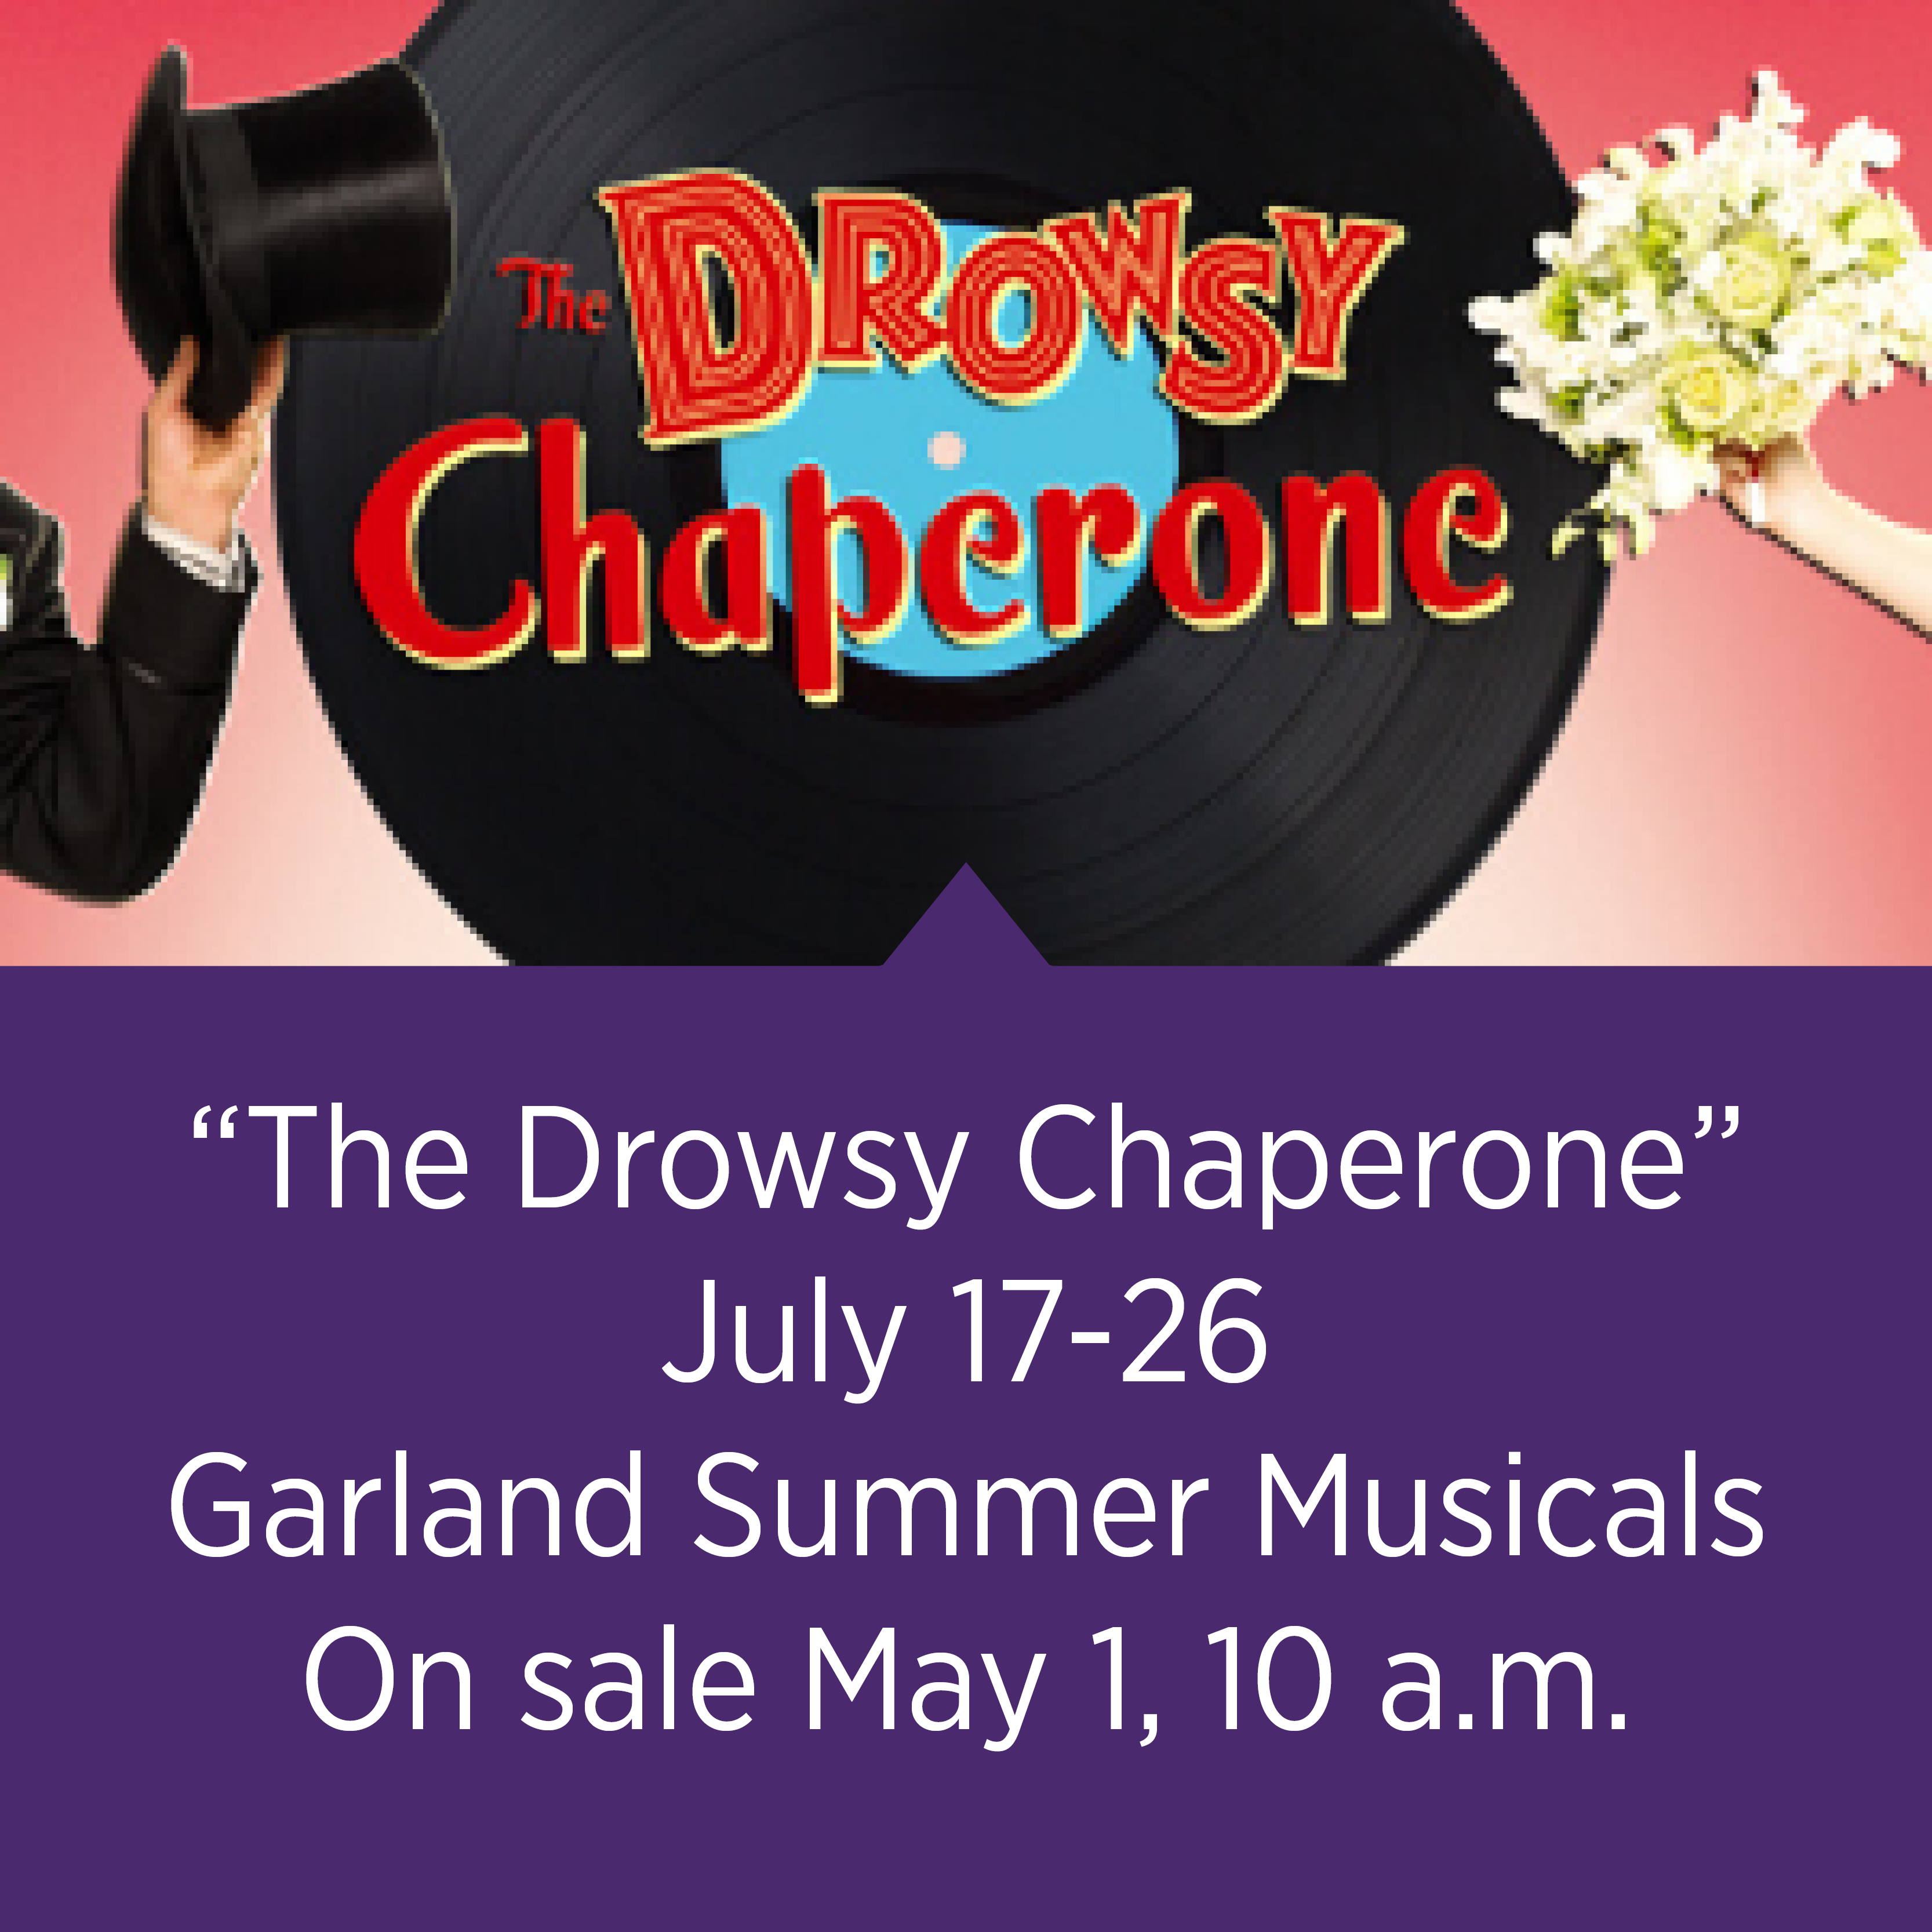 """The Drowsy Chaperone"" July 17-26, Garland Summer Musicals, On sale May 1, 10 a.m."